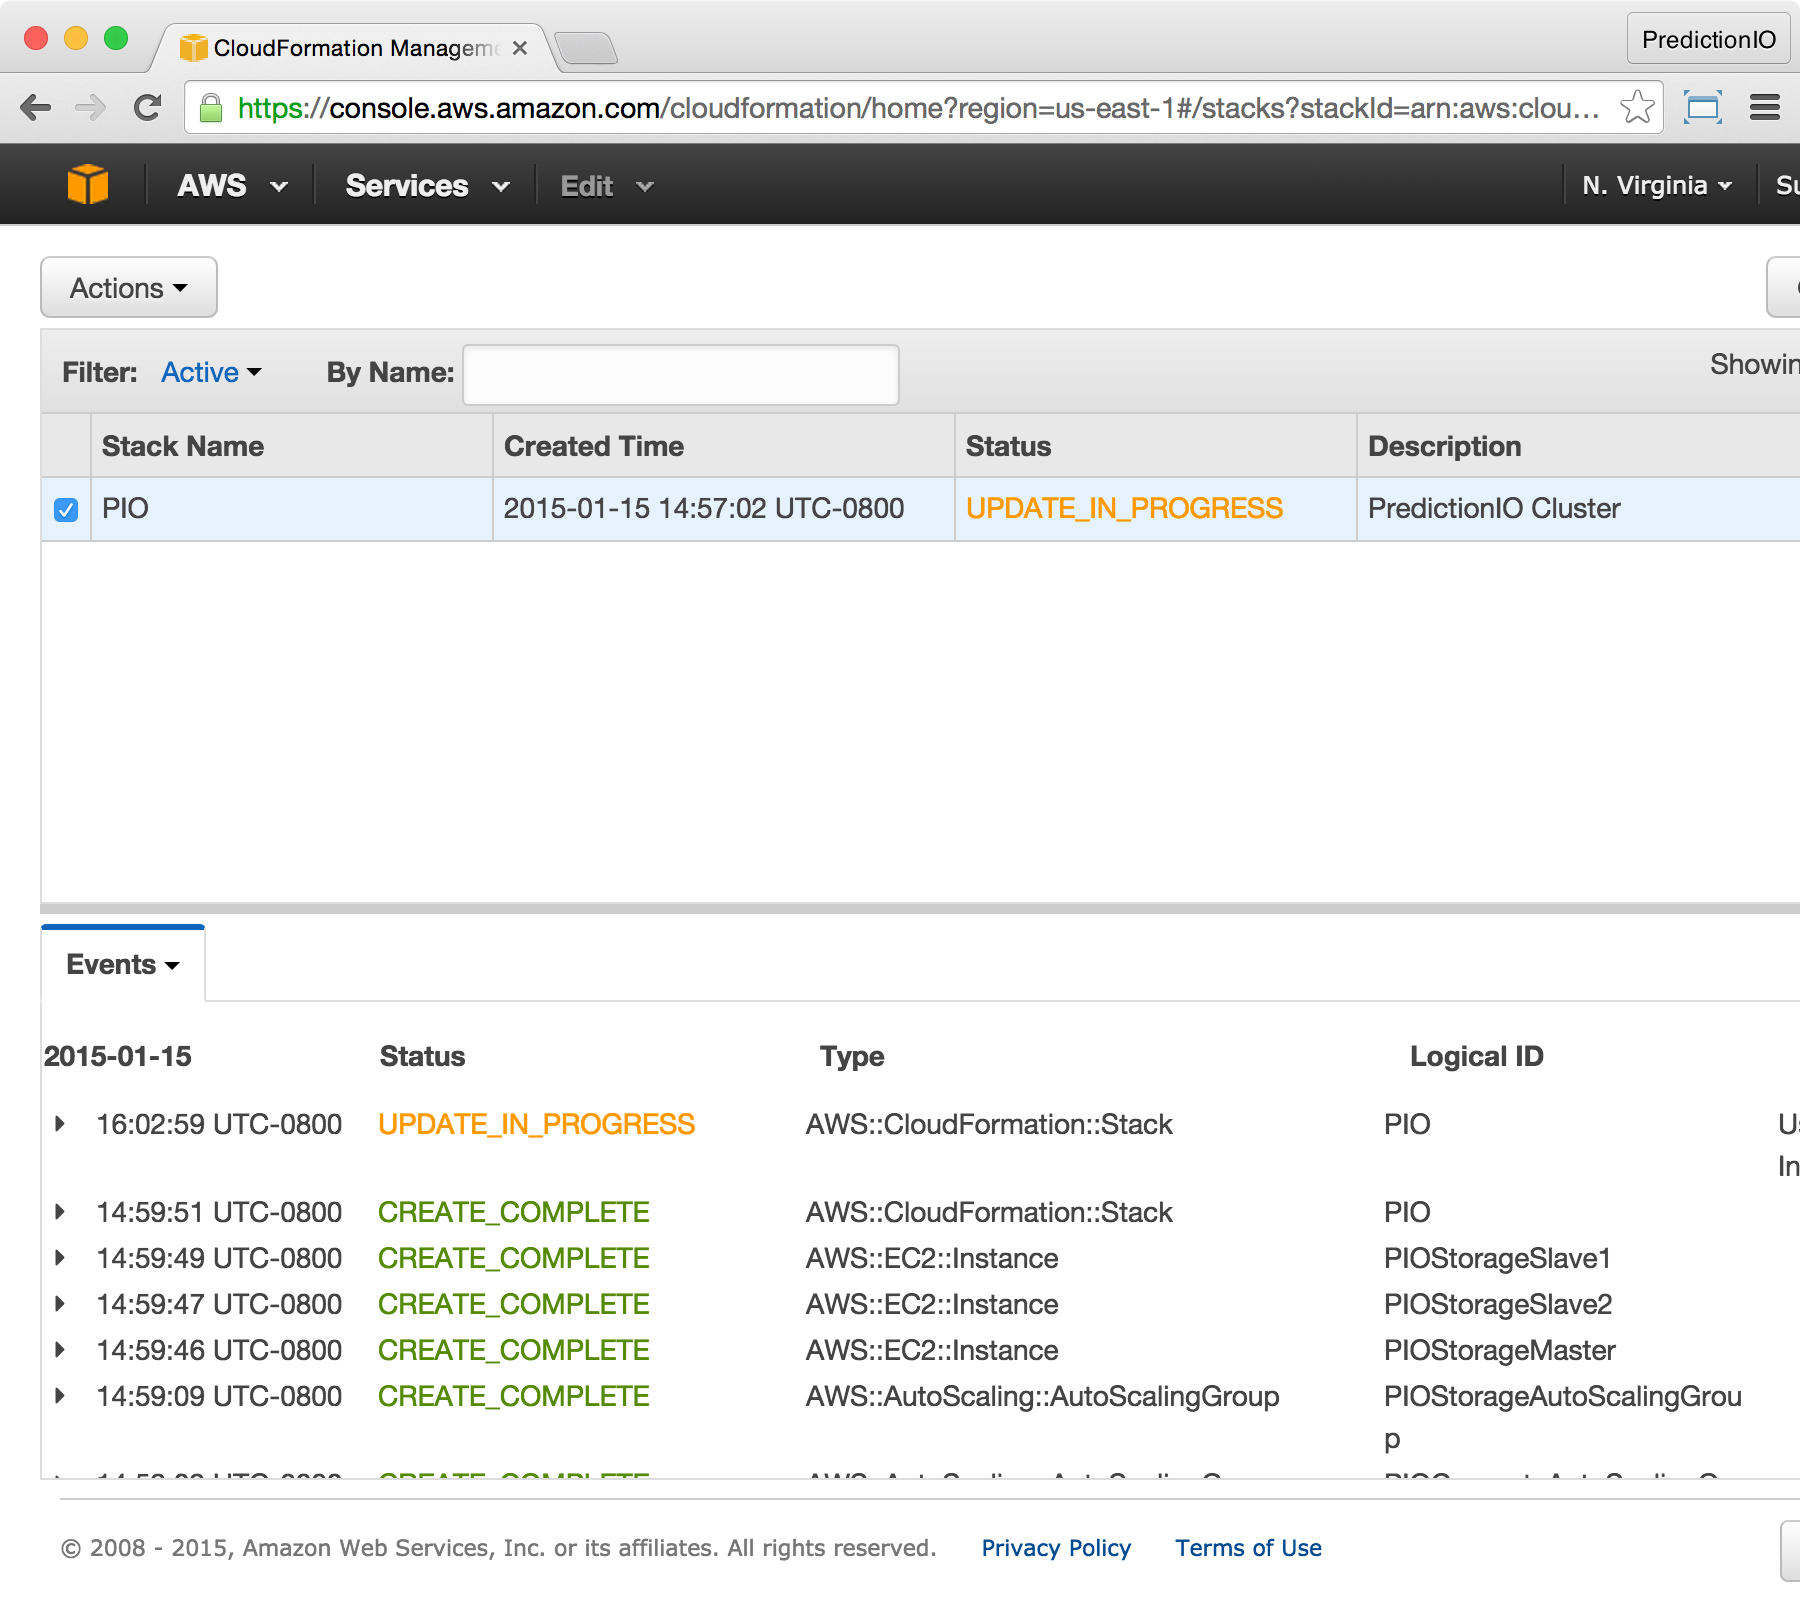 Deploying with AWS CloudFormation